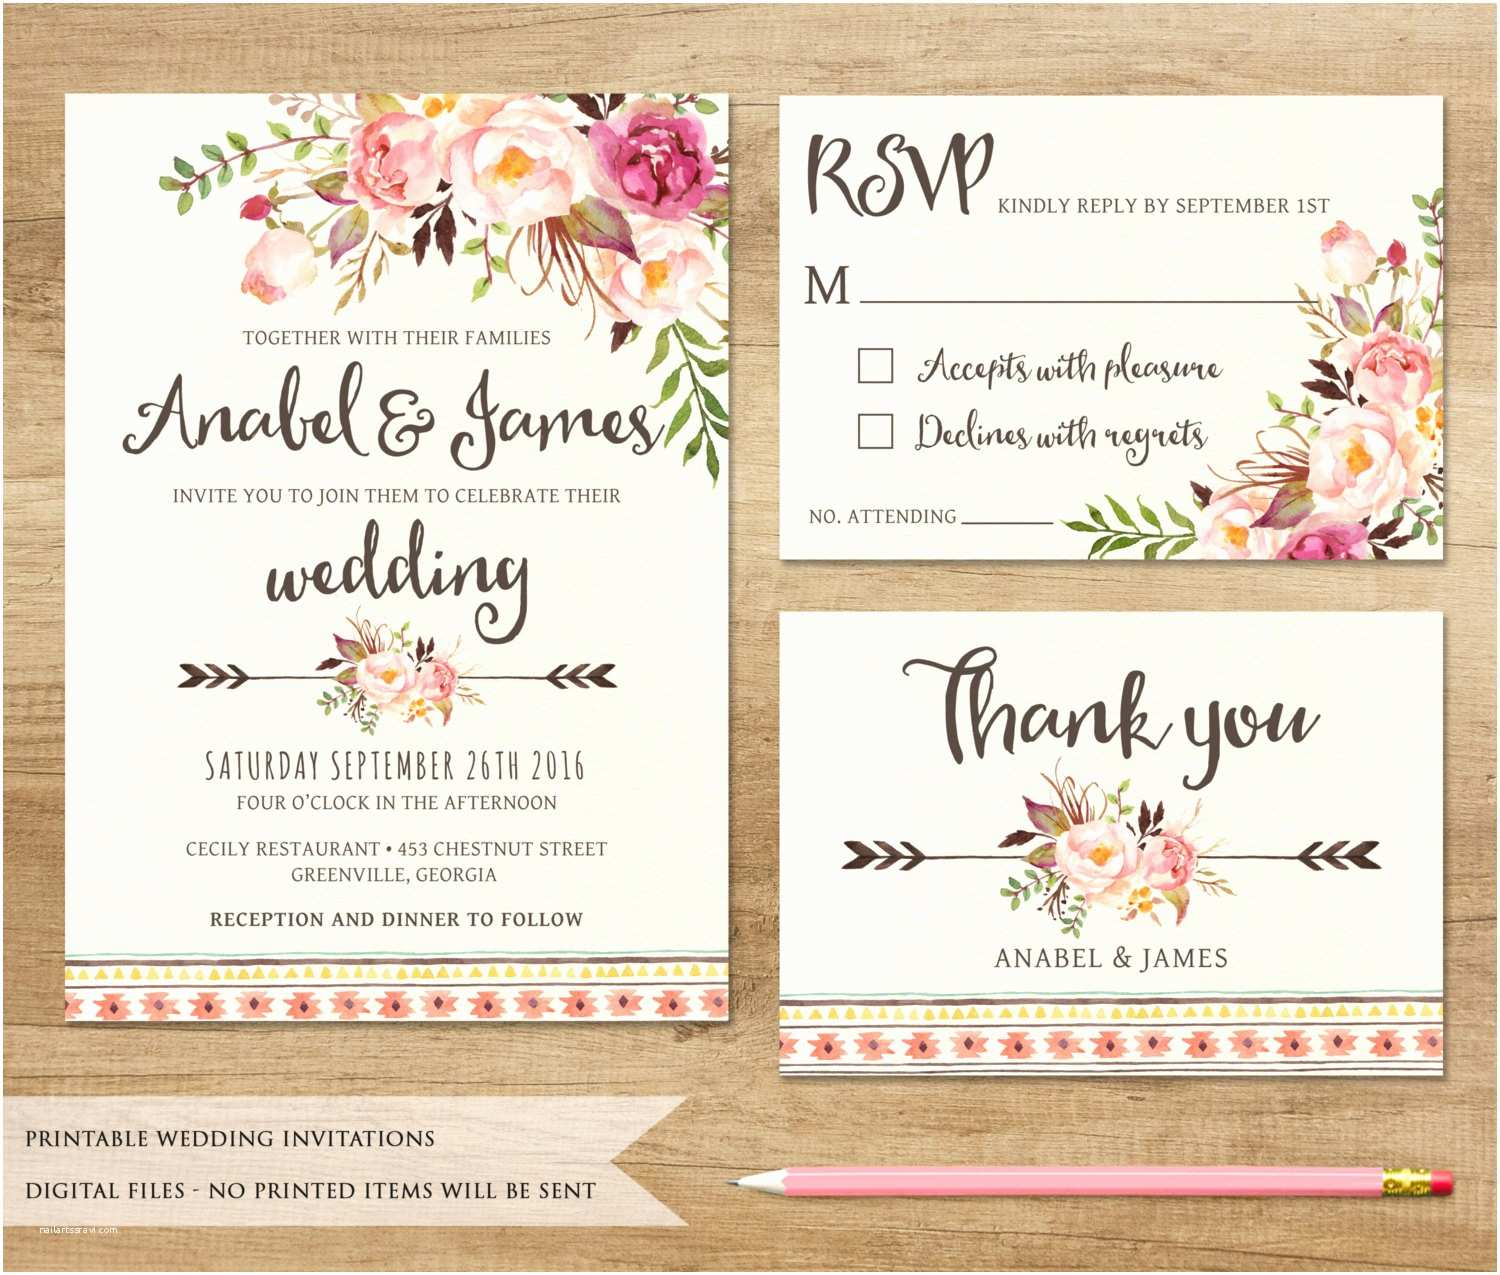 Wedding S To Print At Home For Free Floral Wedding  Printable Wedding